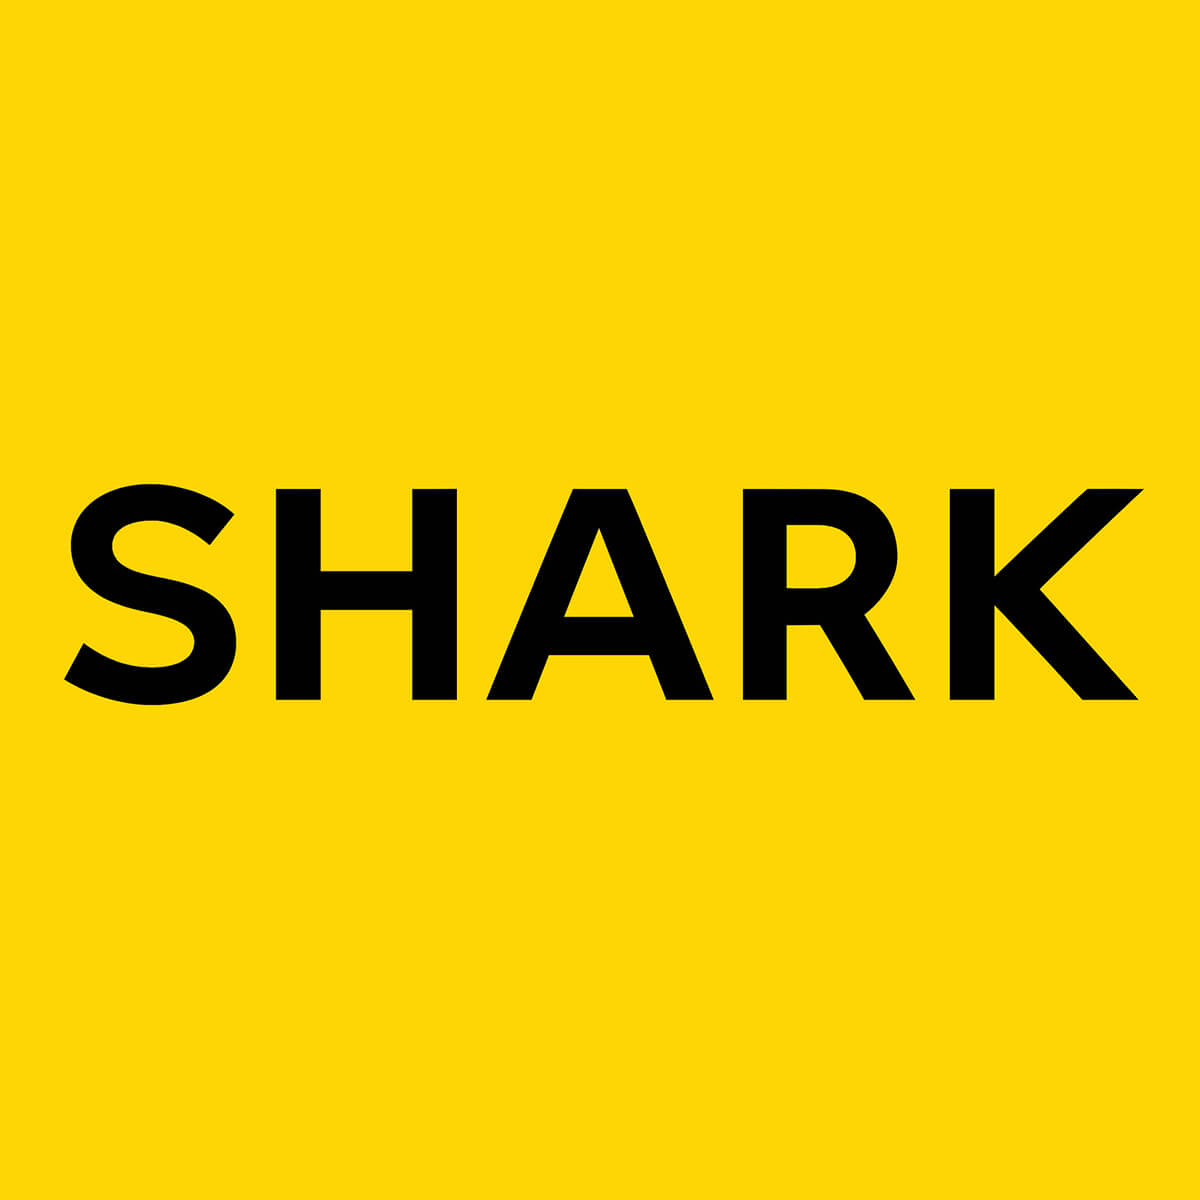 The application for a taxi Shark - Image 5